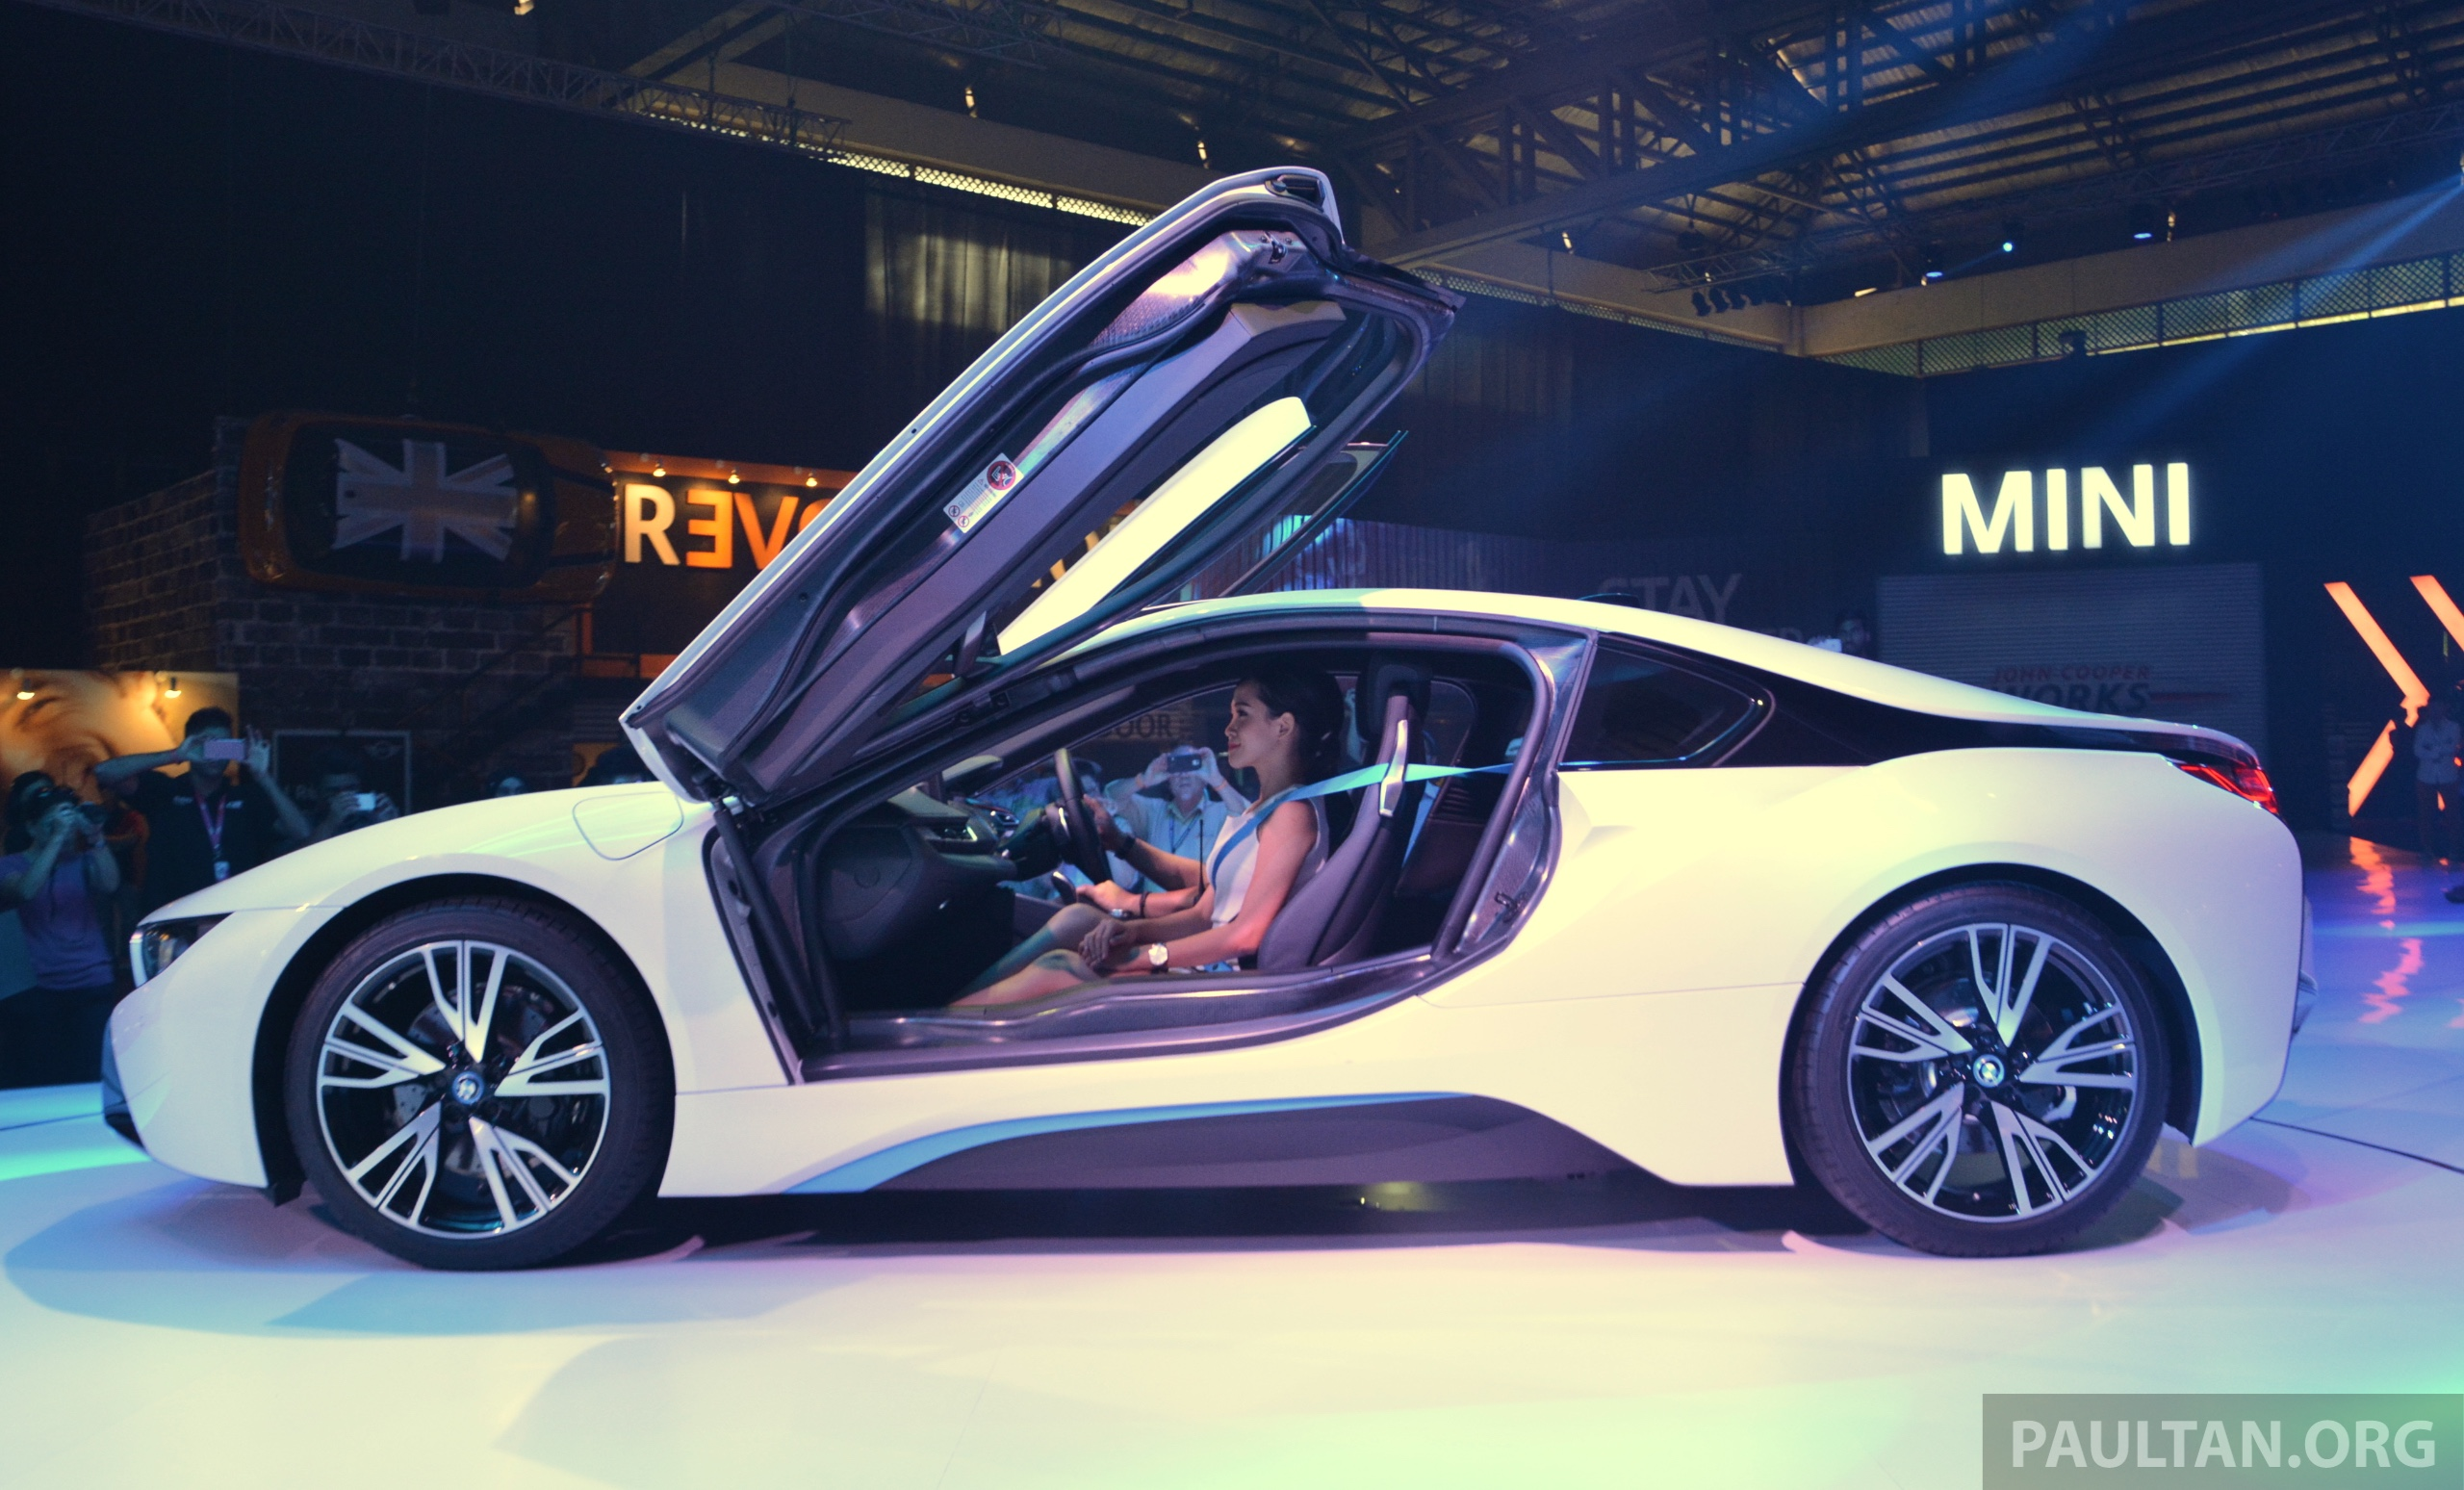 Bmw I8 Launched In Malaysia Priced At Rm1 188 800 Paul Tan Image